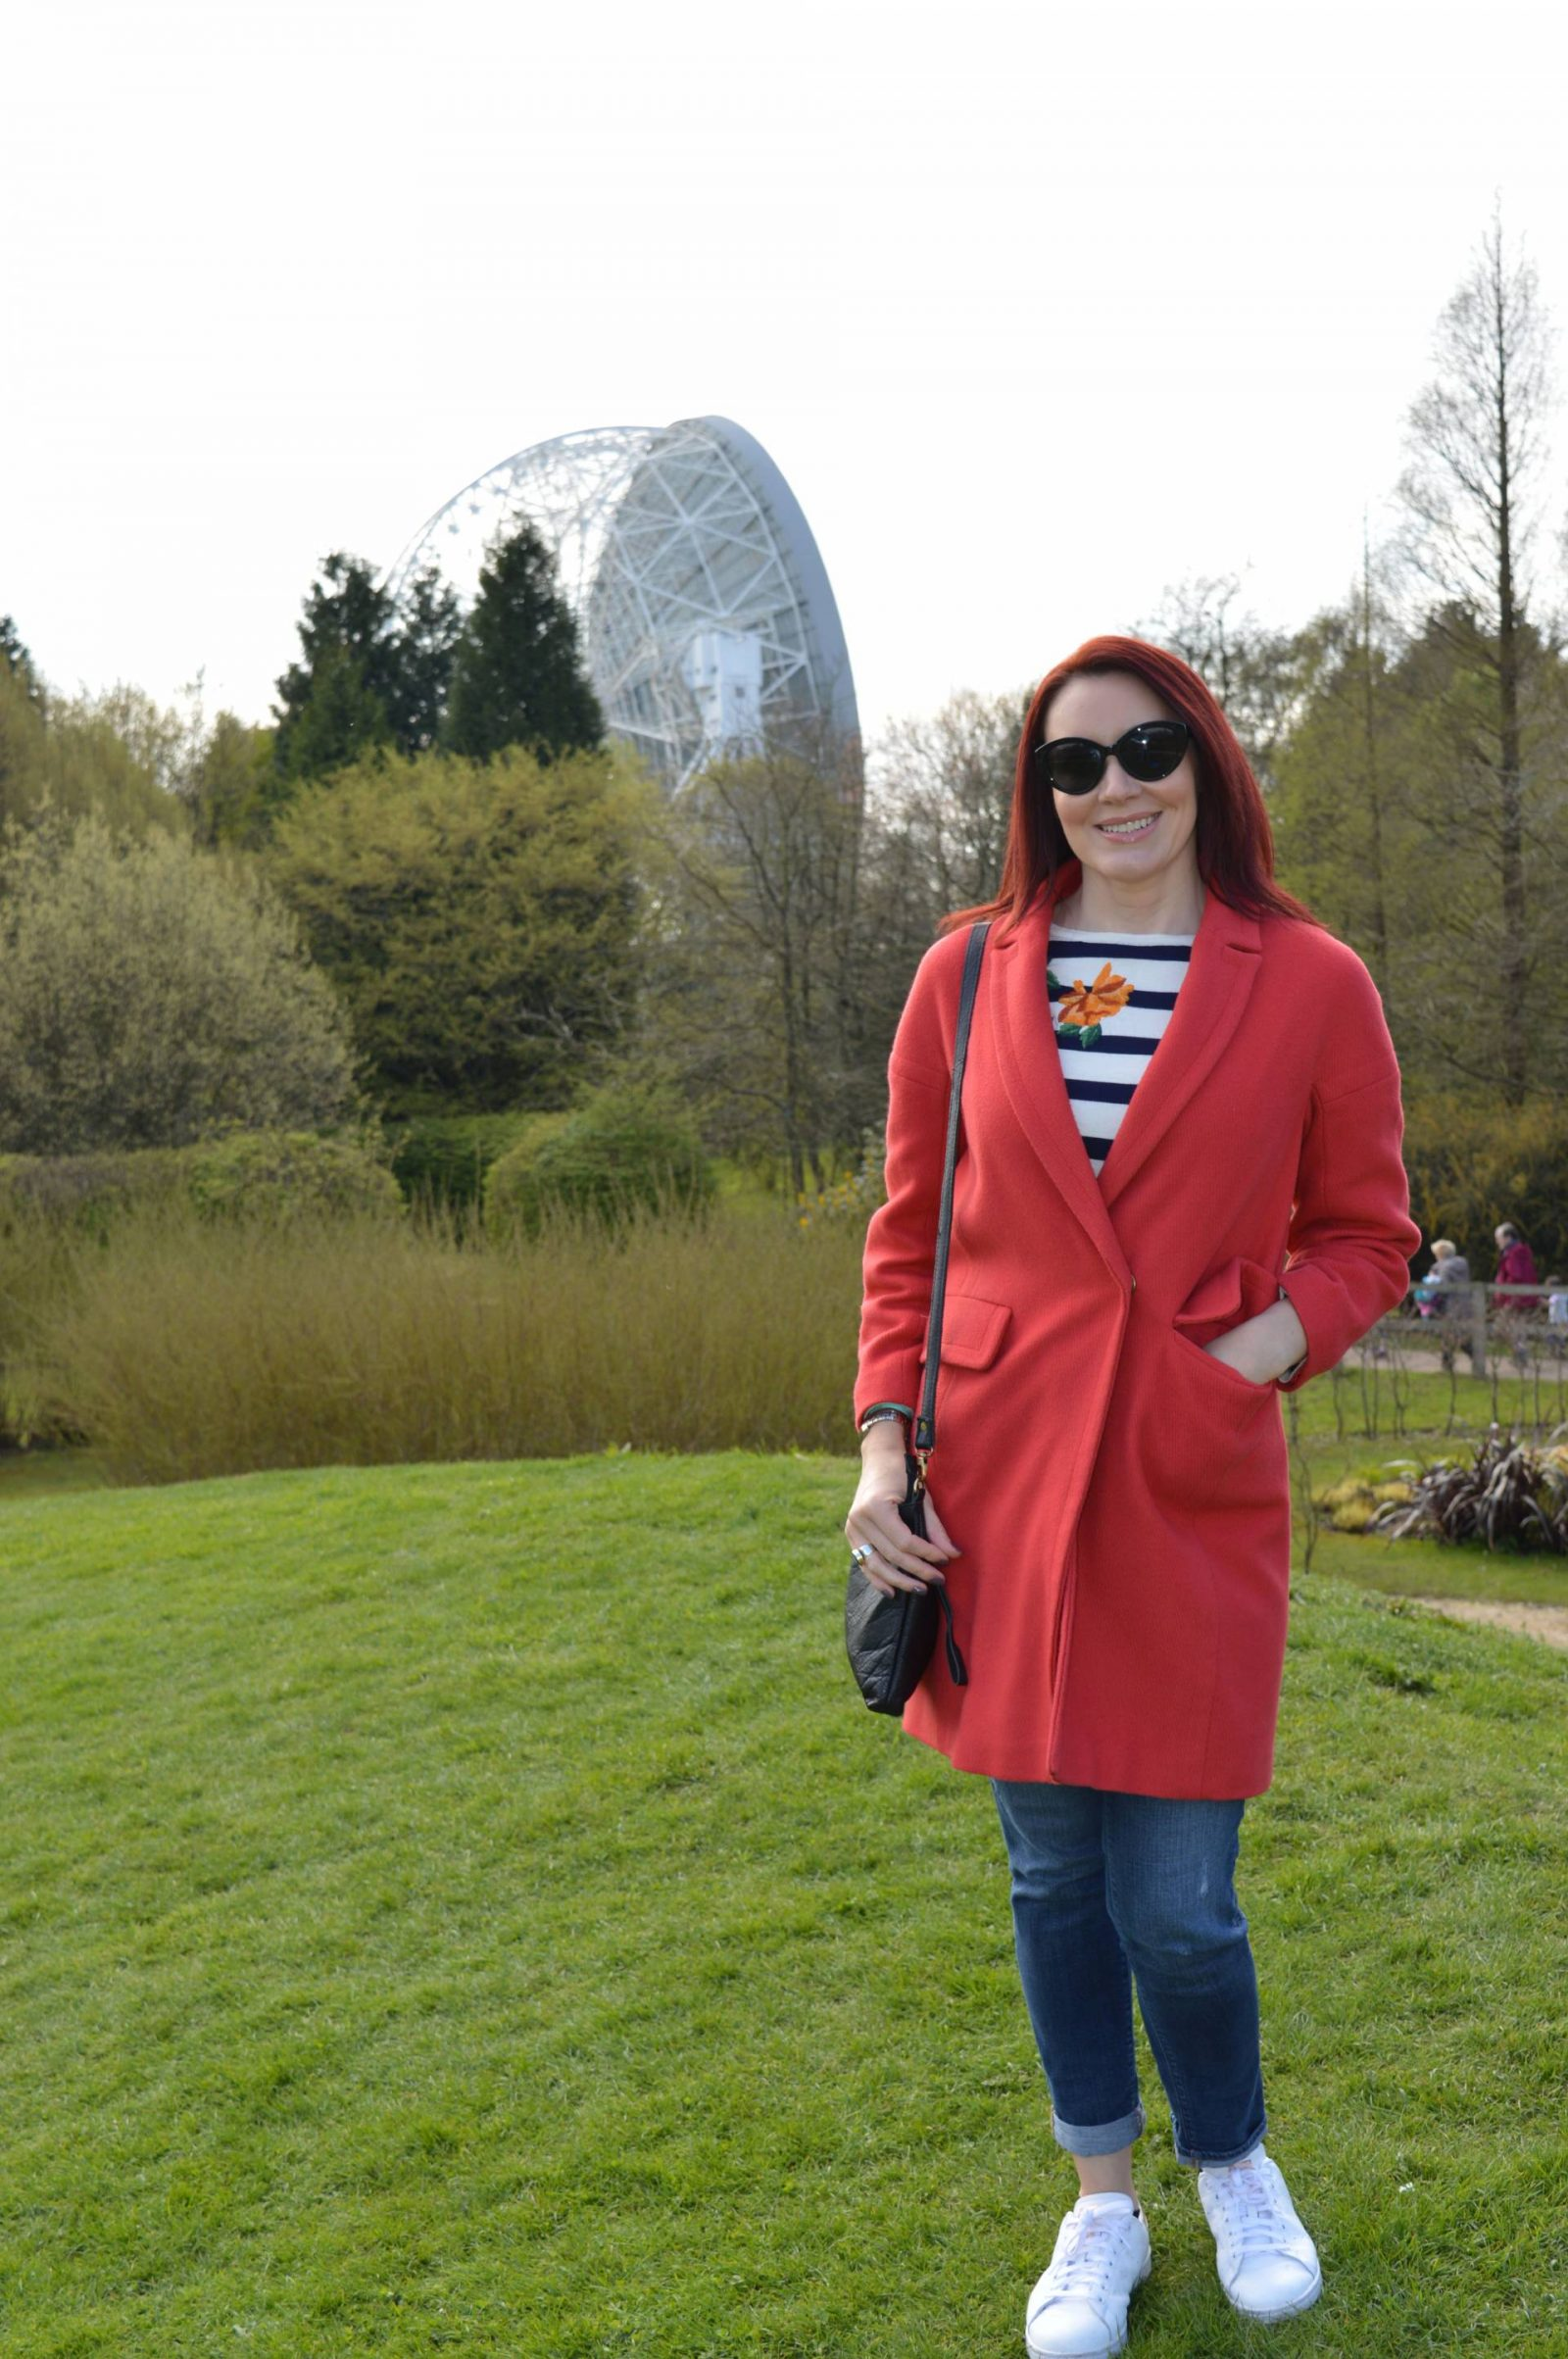 Casual Red, White and Blue Outfit for a Day at Jodrell Bank